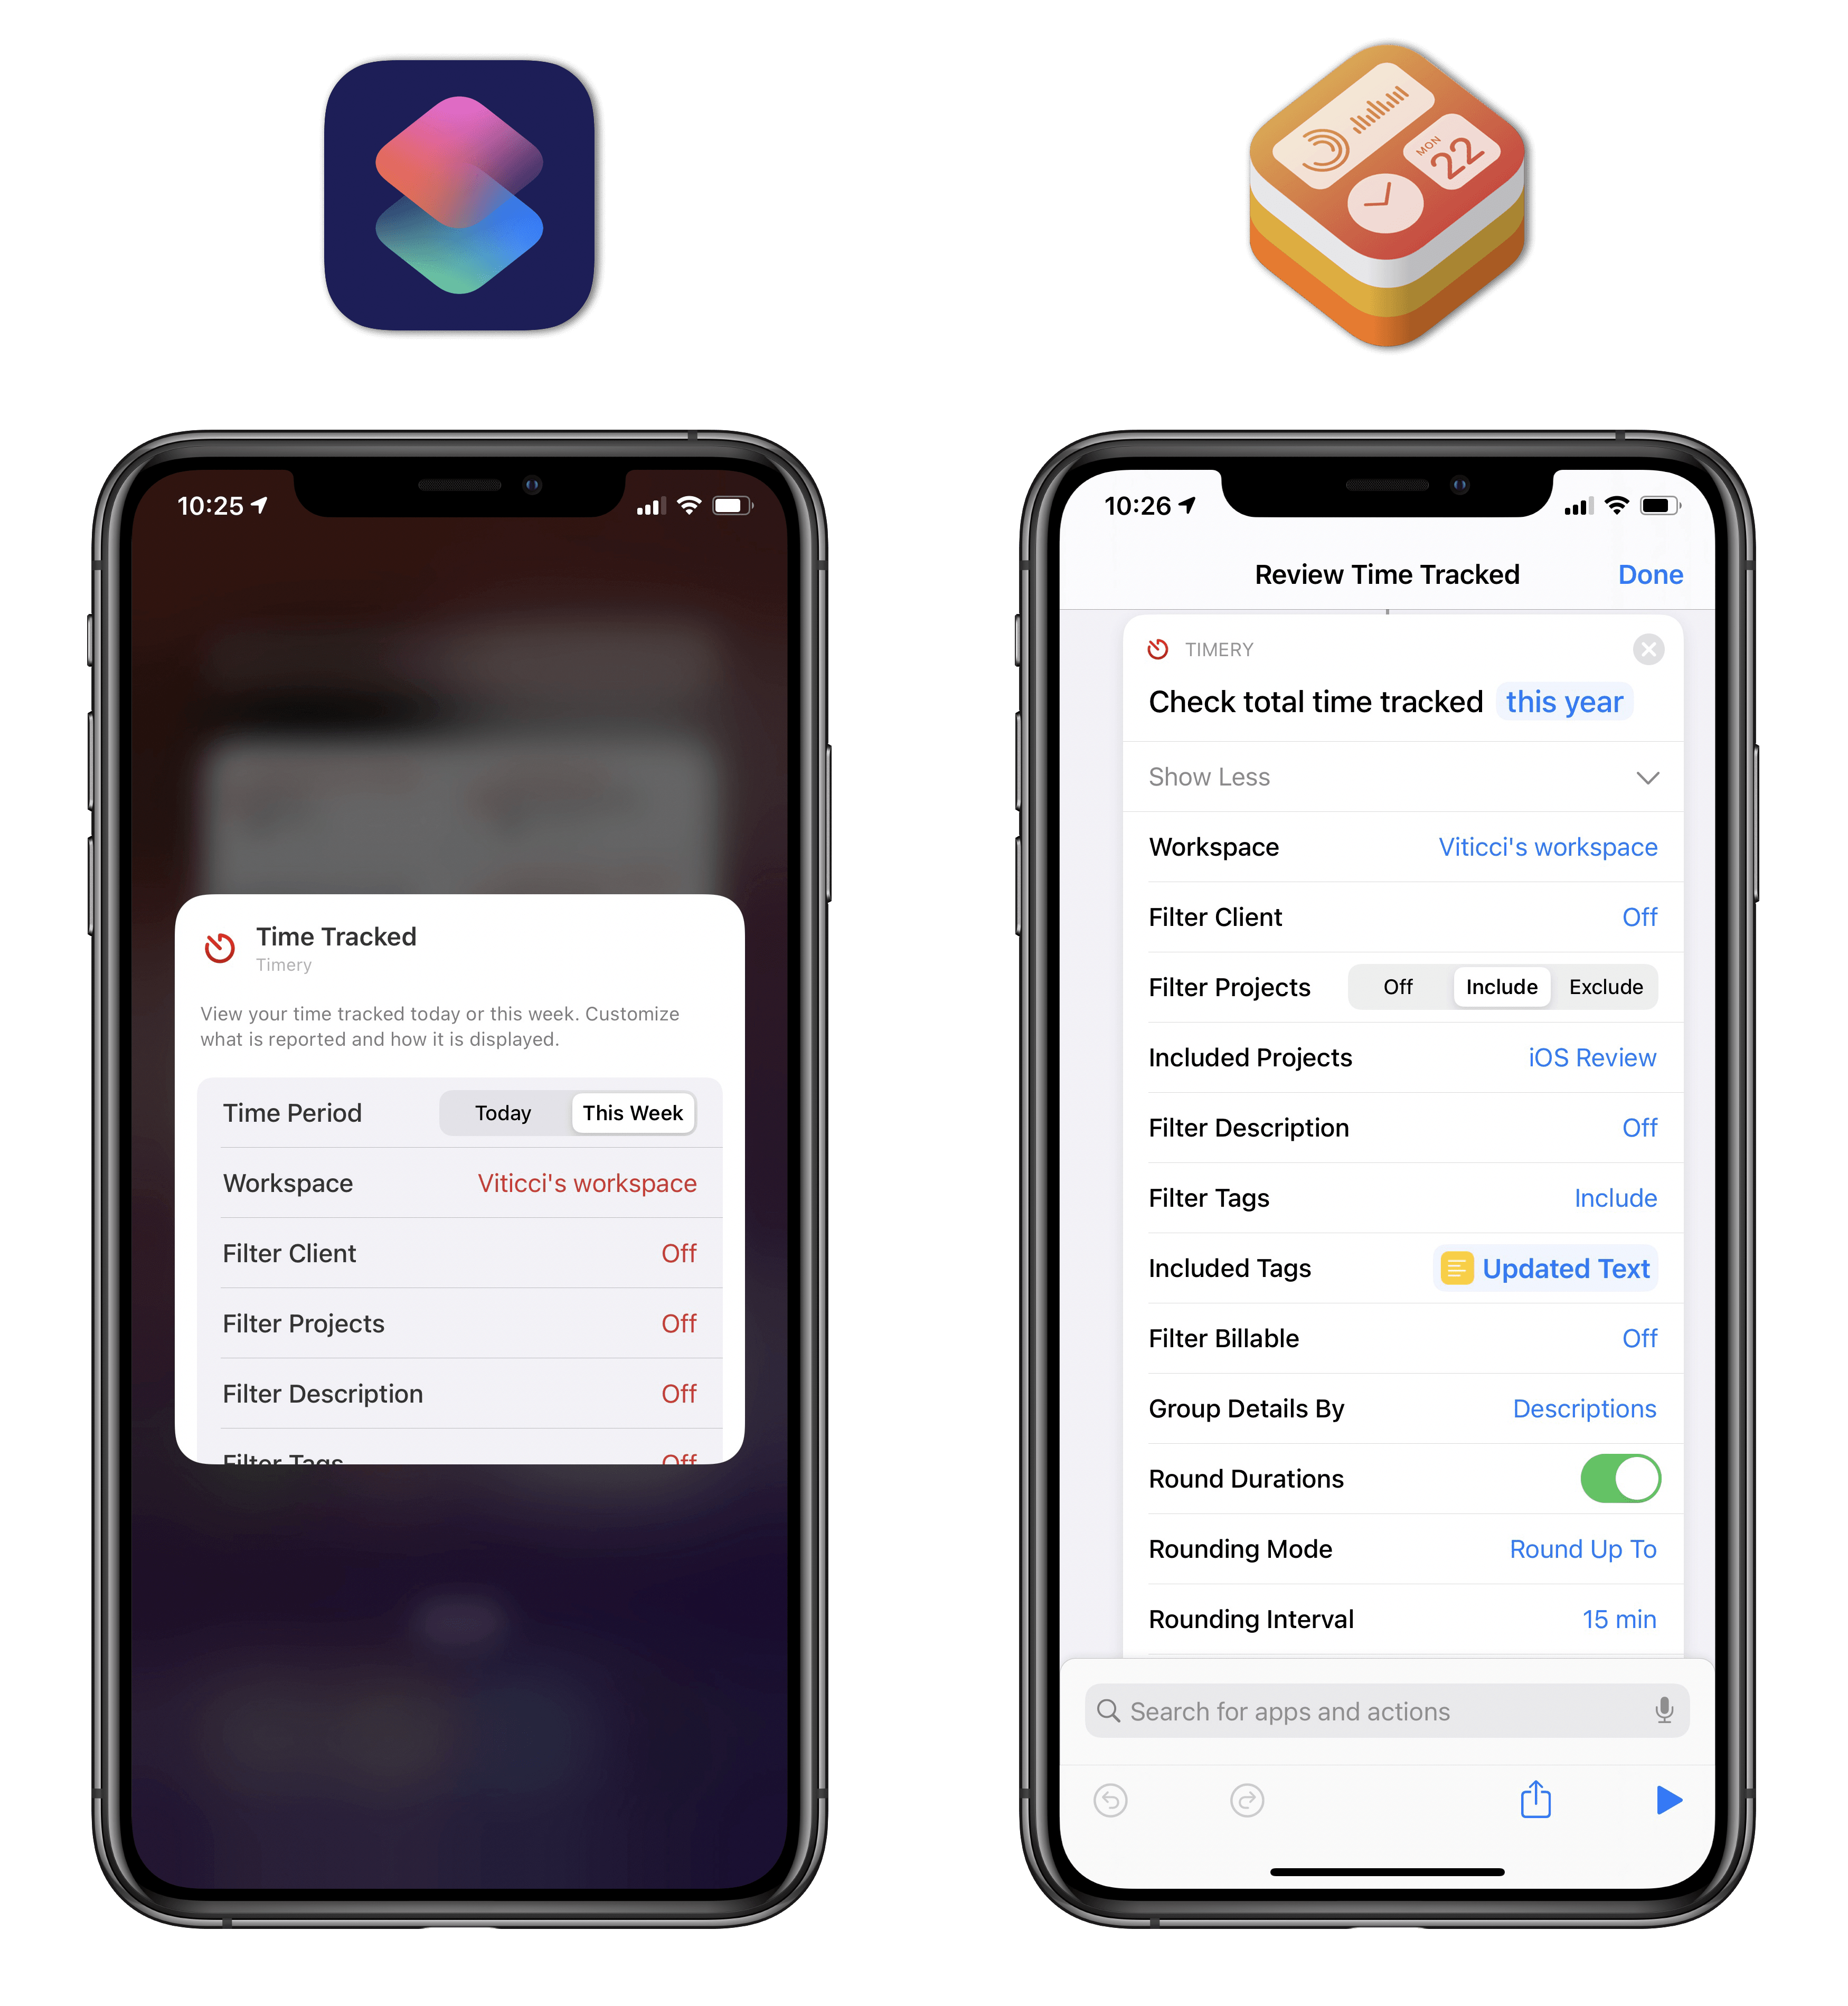 The only difference between the Timery widget and Shortcuts action is the time ranges available for filtering purposes.